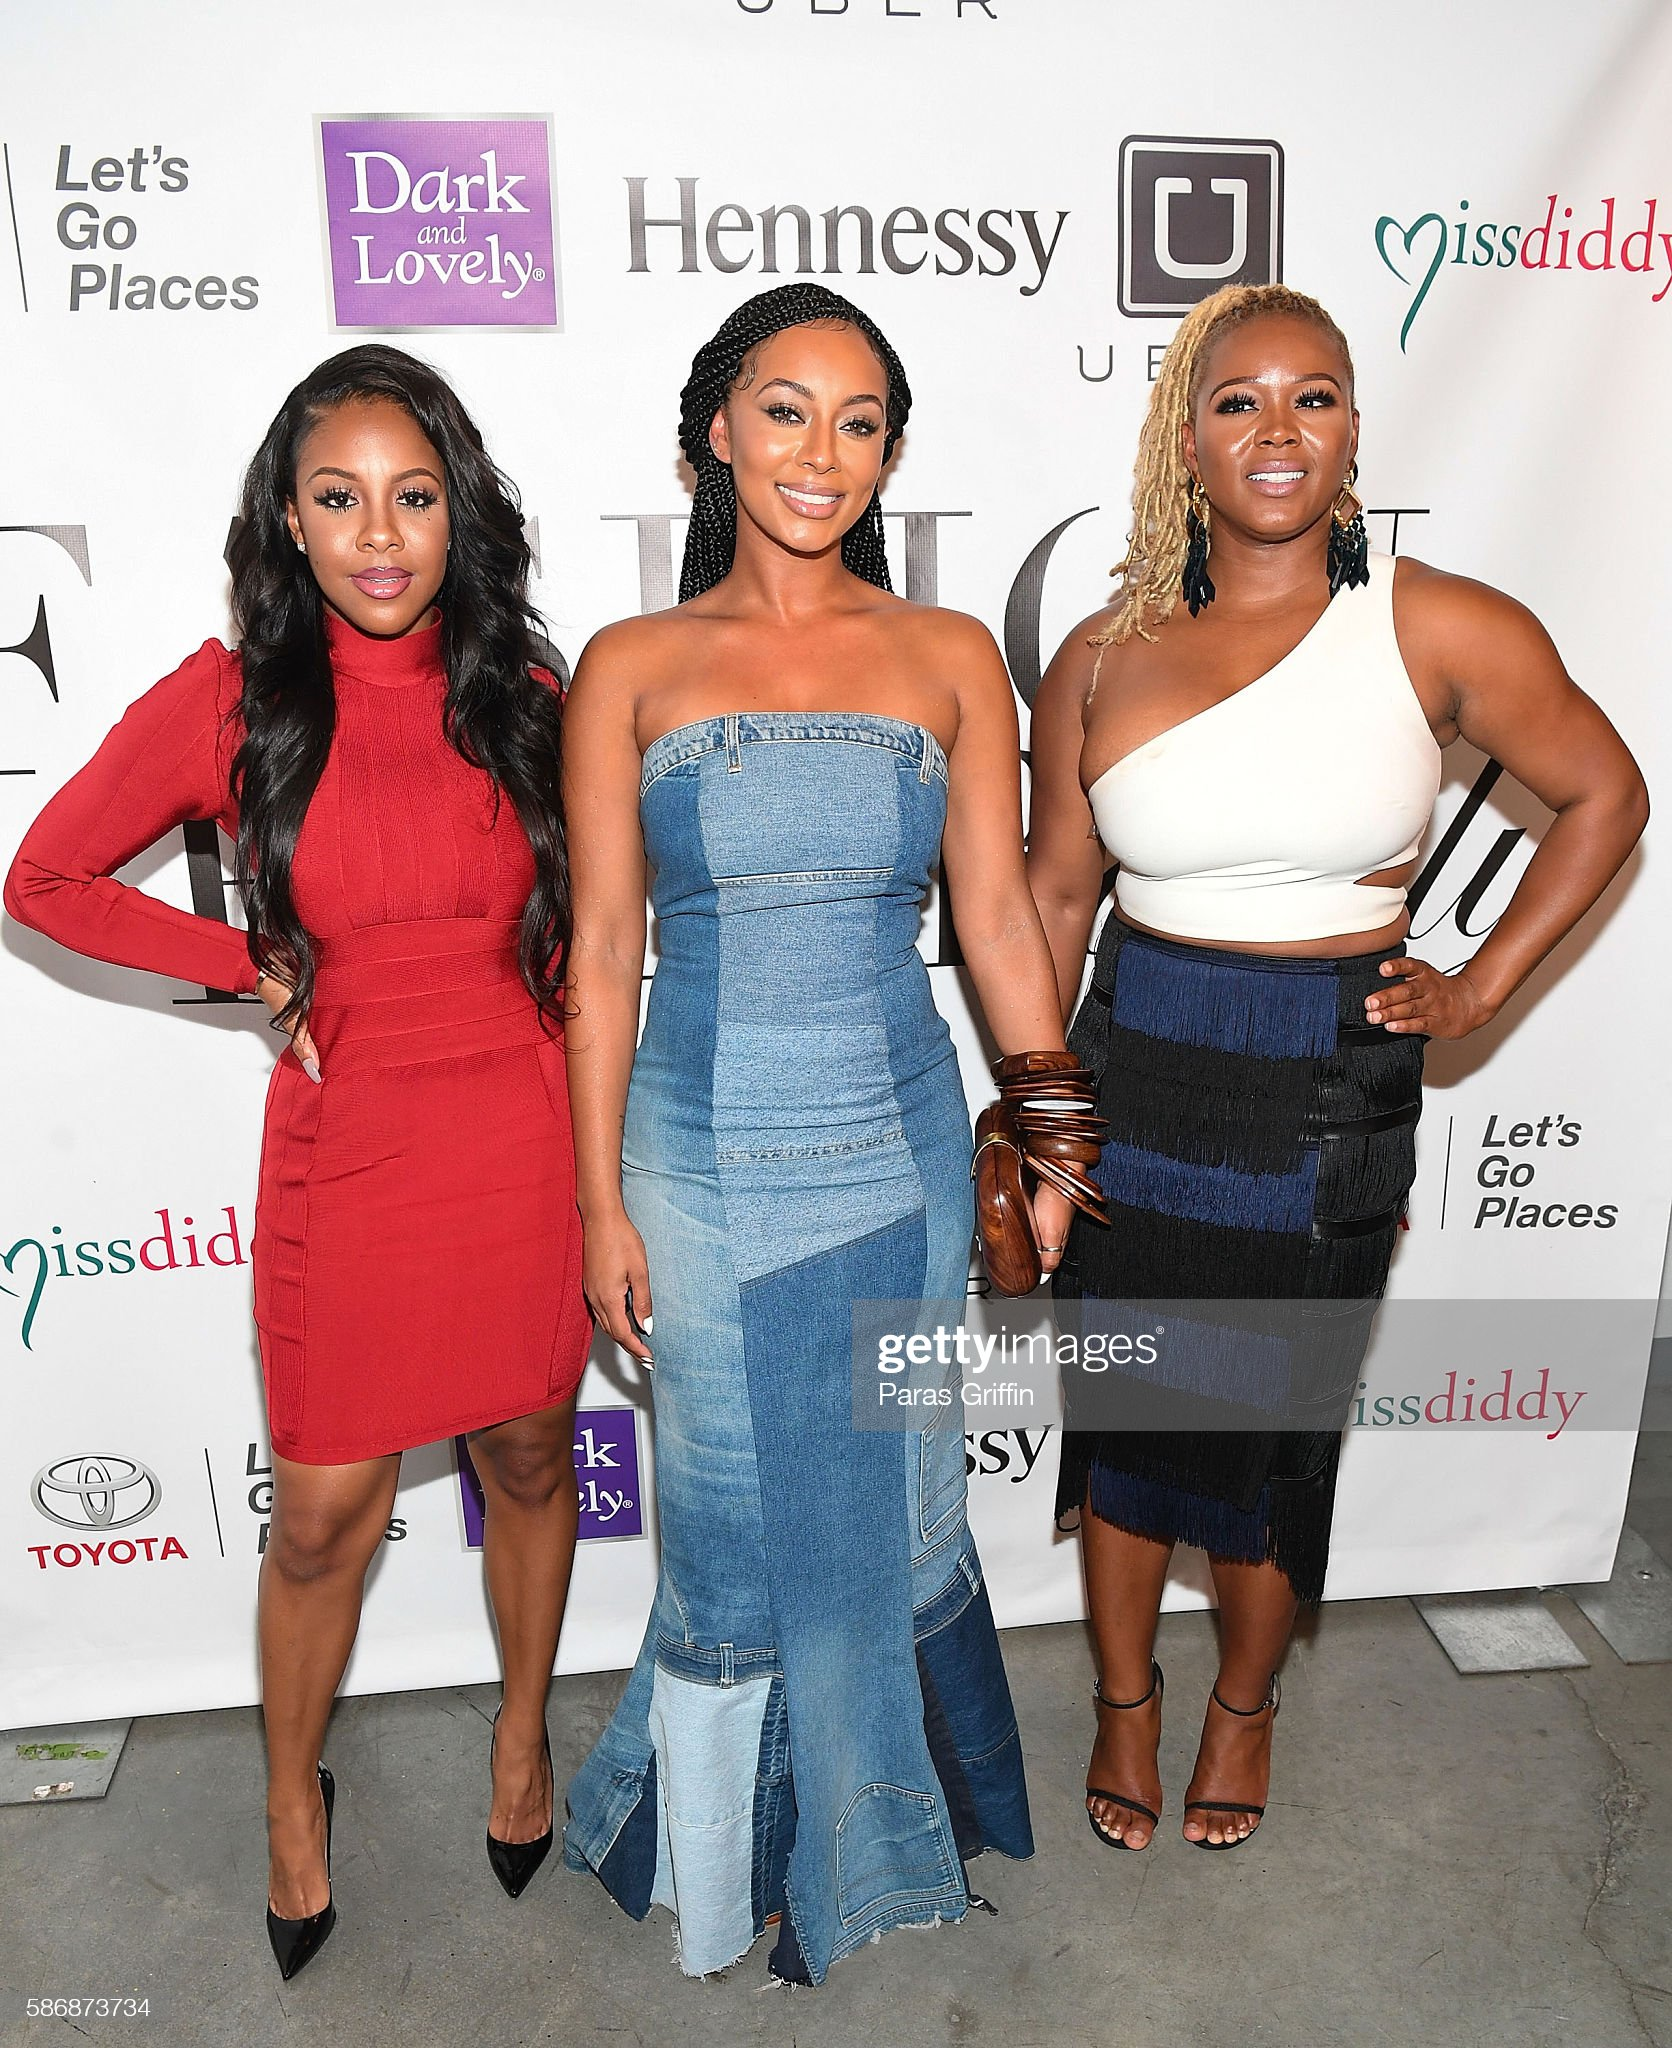 ¿Cuánto mide Miss Diddy? - Altura - Real height Miss-diddy-keri-hilson-and-claire-sulmers-attend-cocktails-with-picture-id586873734?s=2048x2048